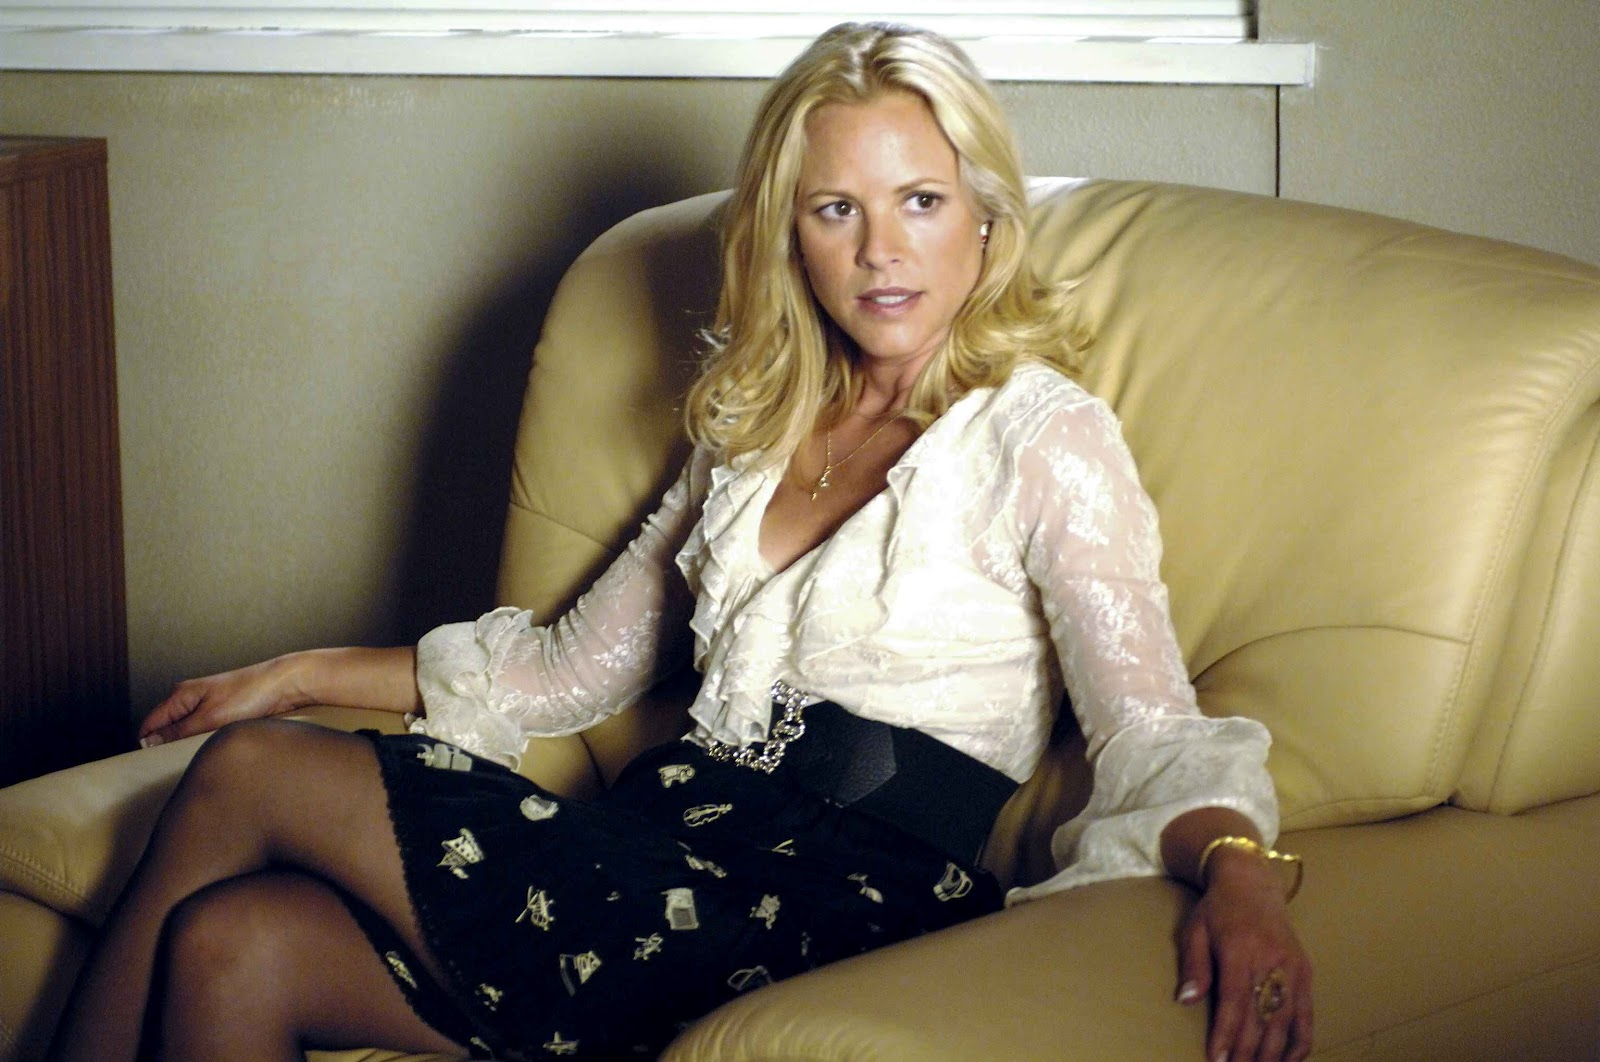 Bello hot photos,maria bello hot photo,maria bello age,maria bello